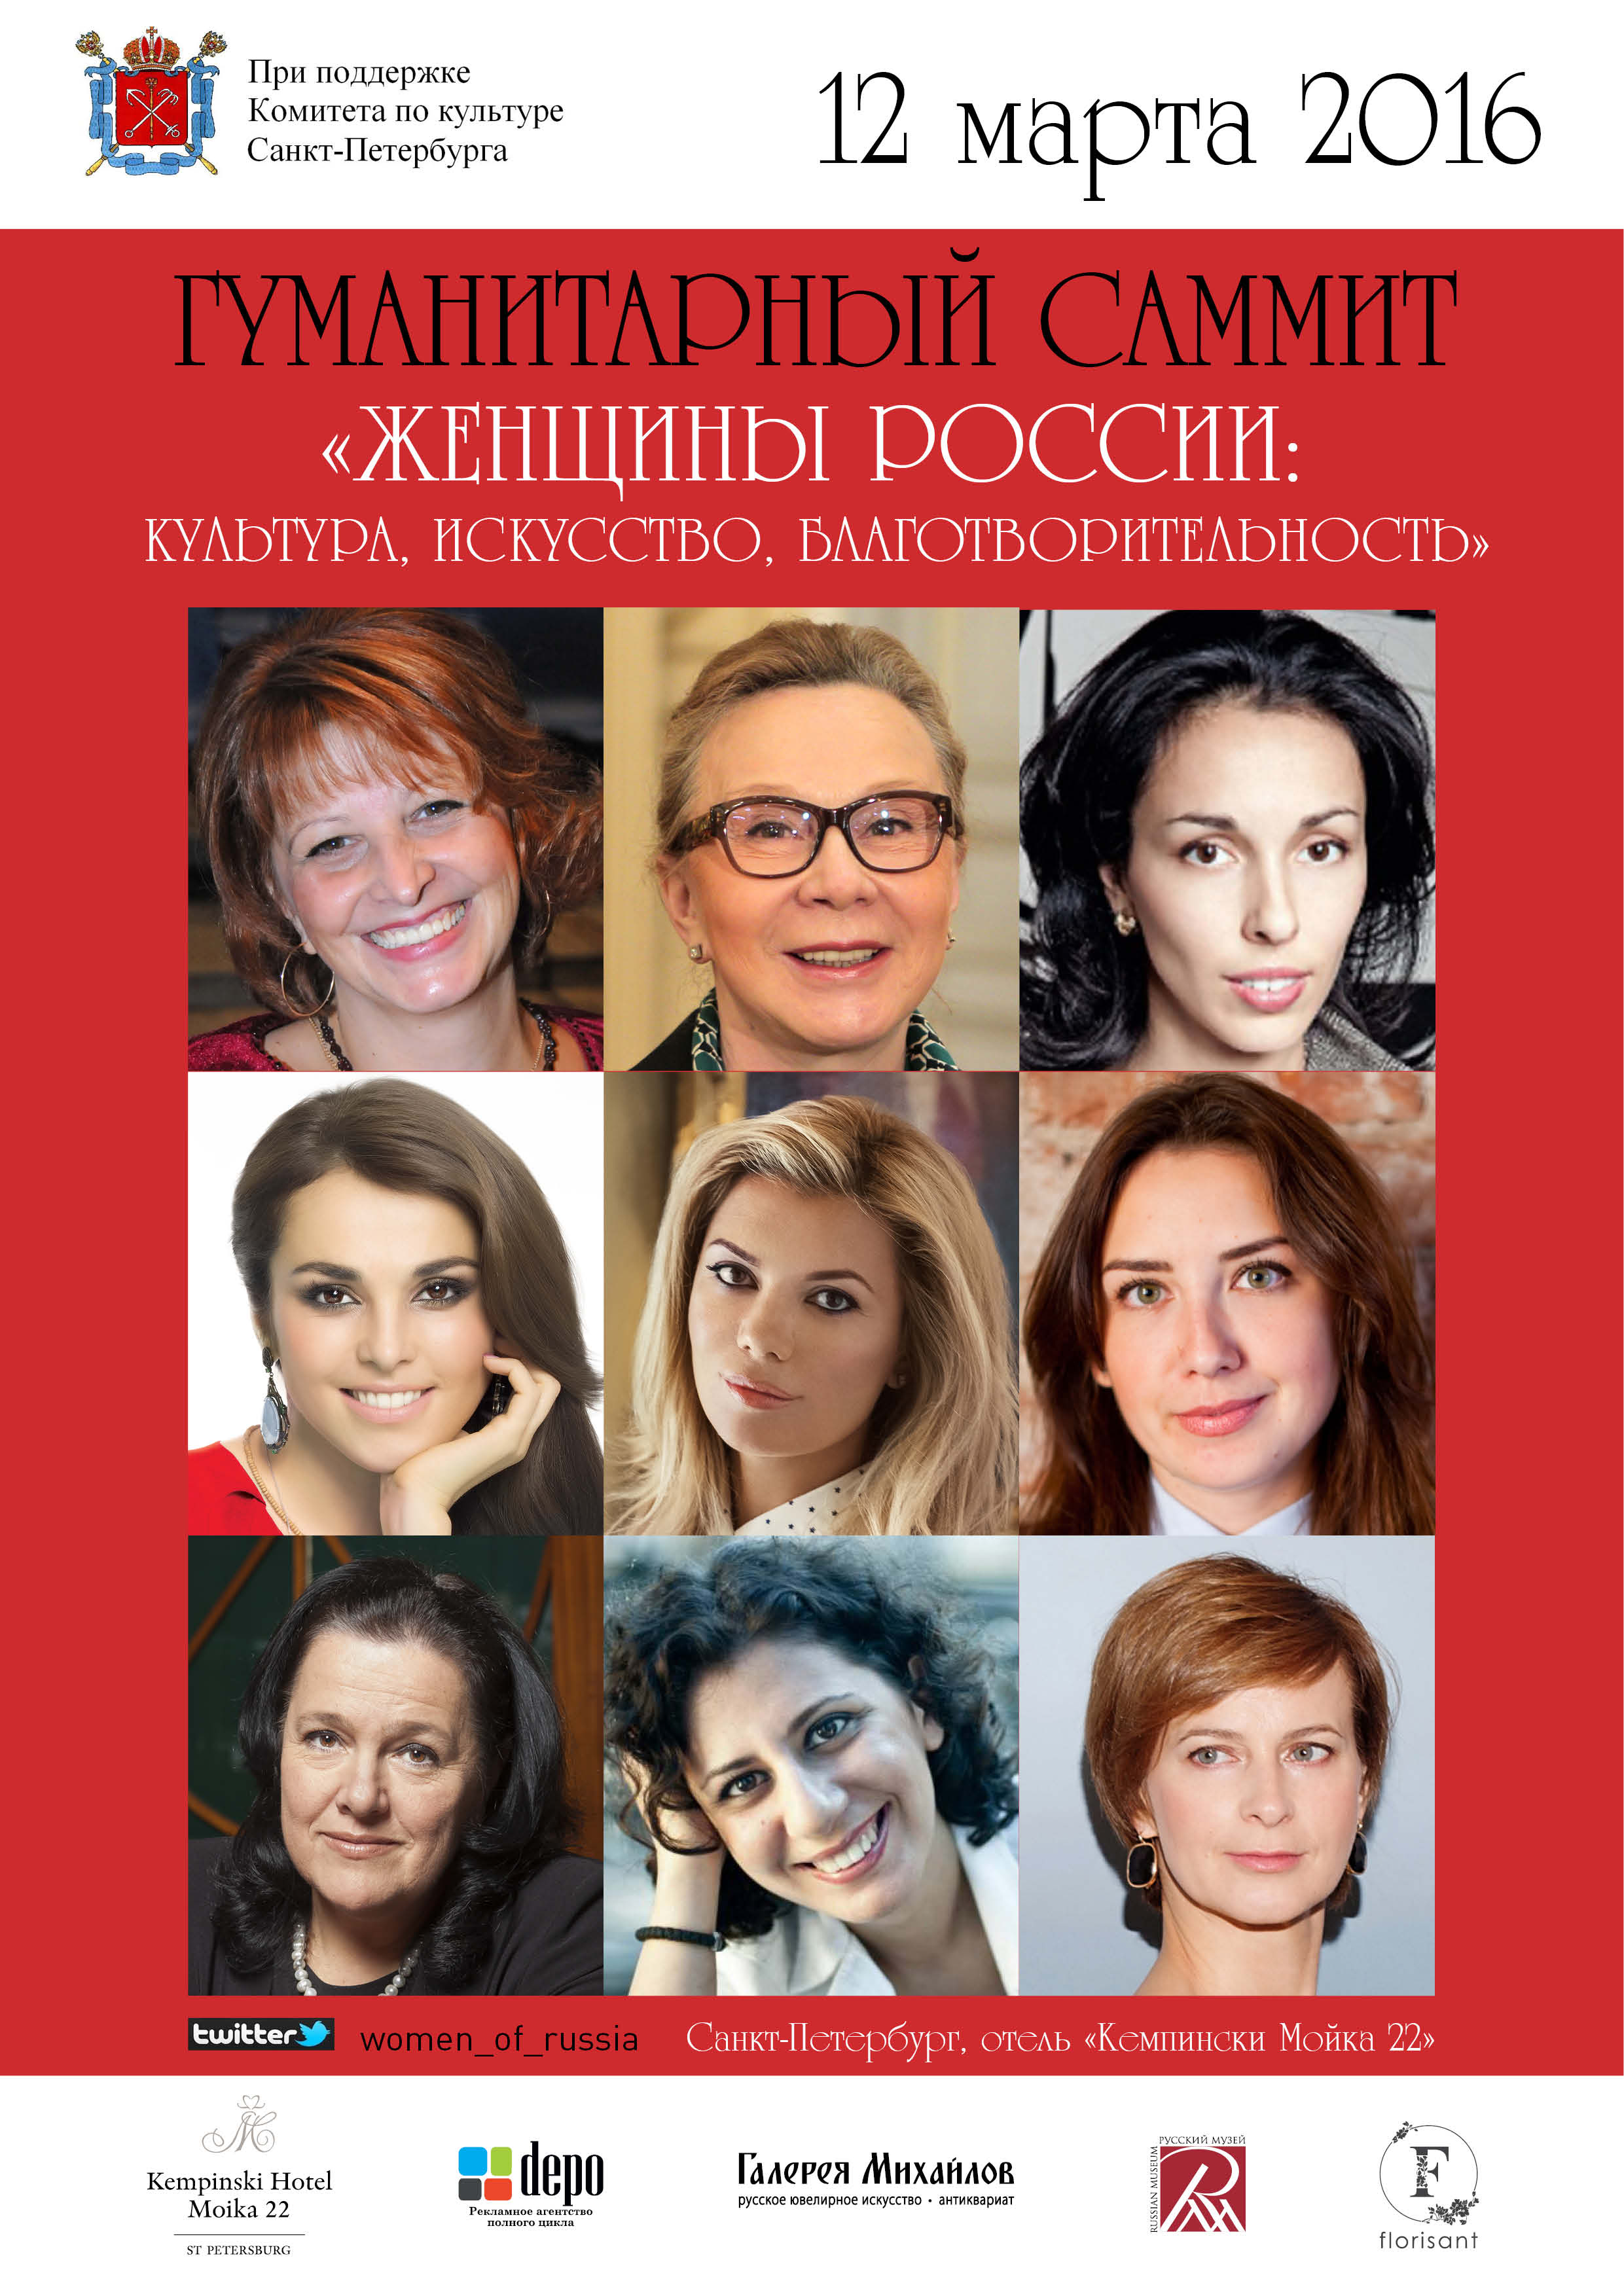 Women of Russia in culture